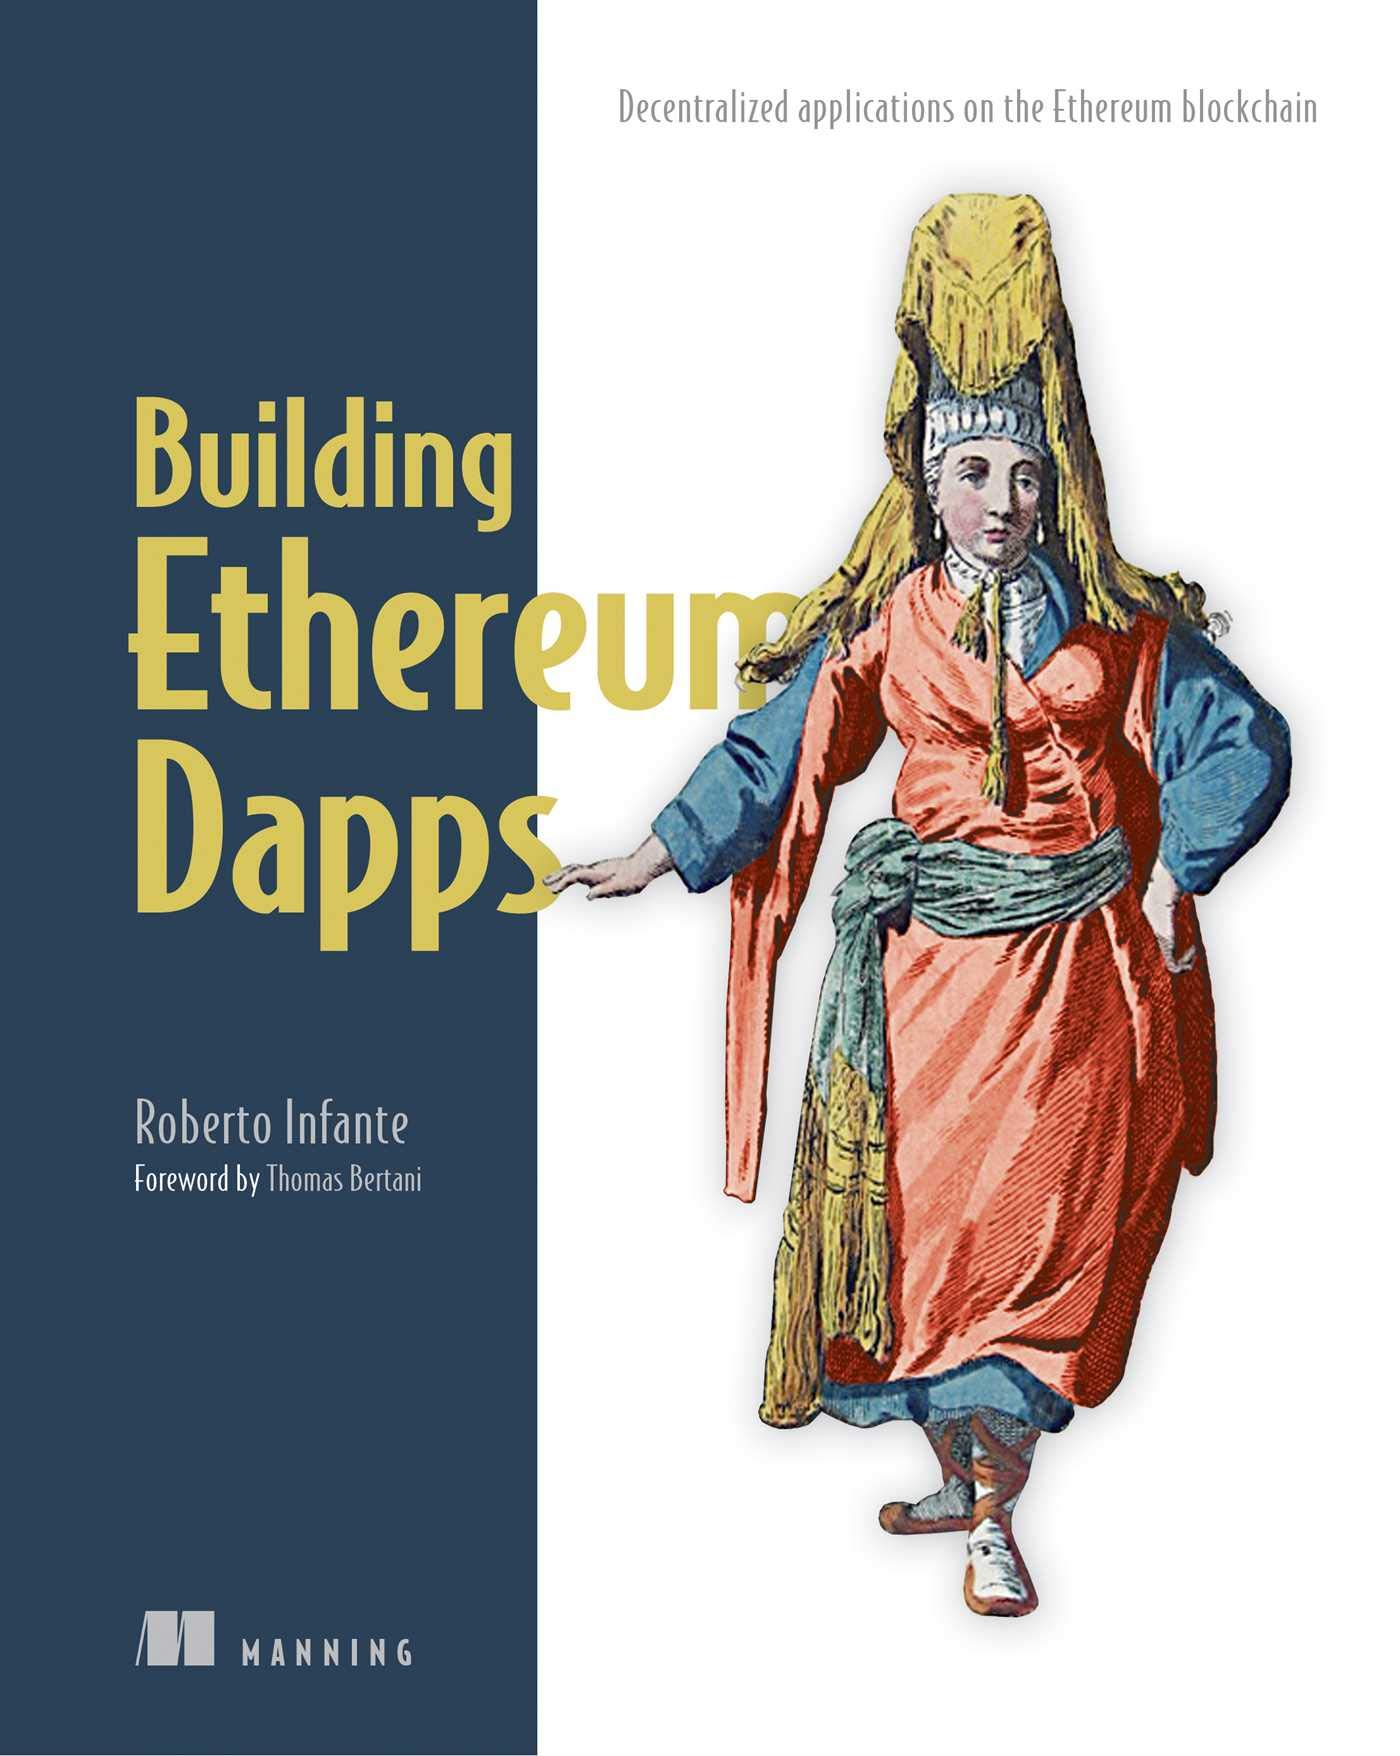 Building Ethereum D Apps: Decentralized Applications On The Ethereum Blockchain